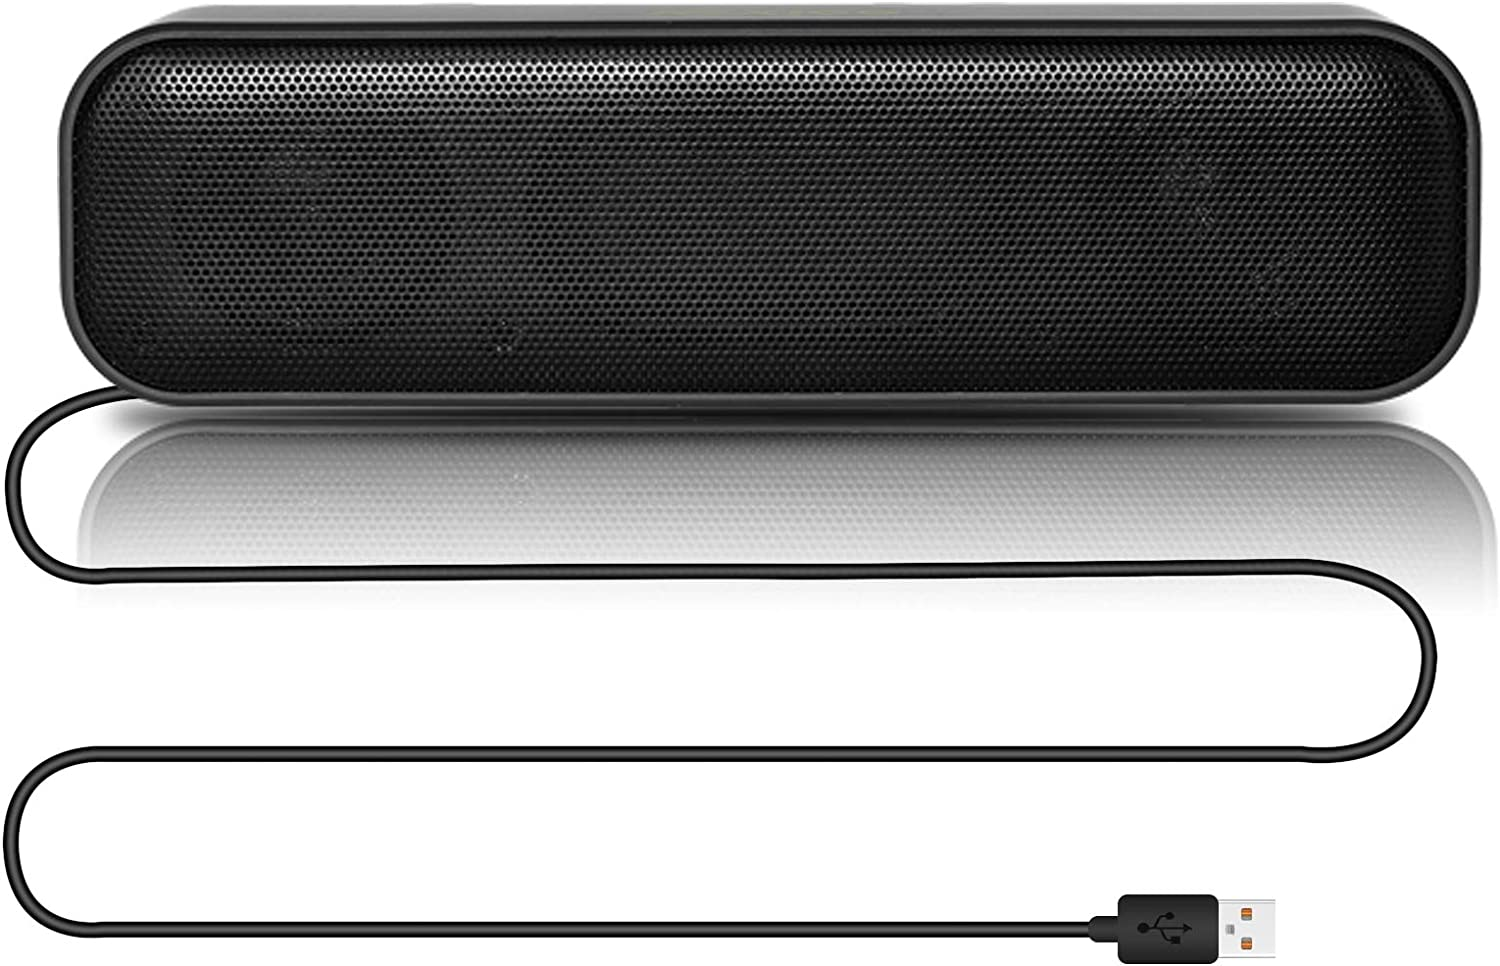 NexiGo USB Computer Speaker, USB Audio Decoder Speaker with Stereo Sound and Enhanced Bass, Portable Mini Speakers for Computer Laptop Tablet Game Console, Black